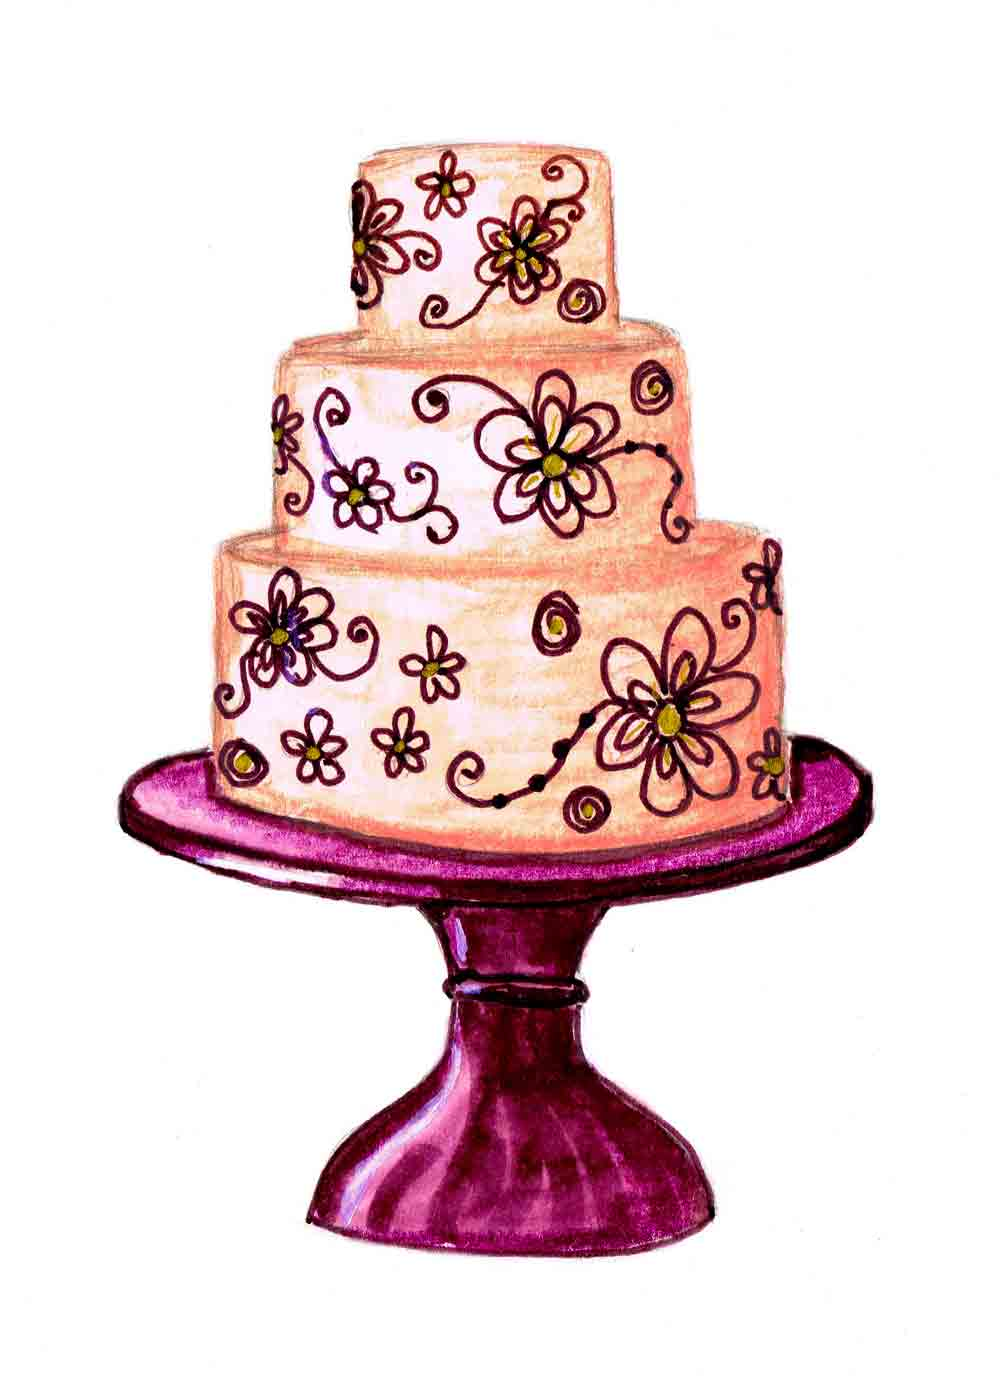 Tea-Time-No-15-cake-on-stand-kw.jpg